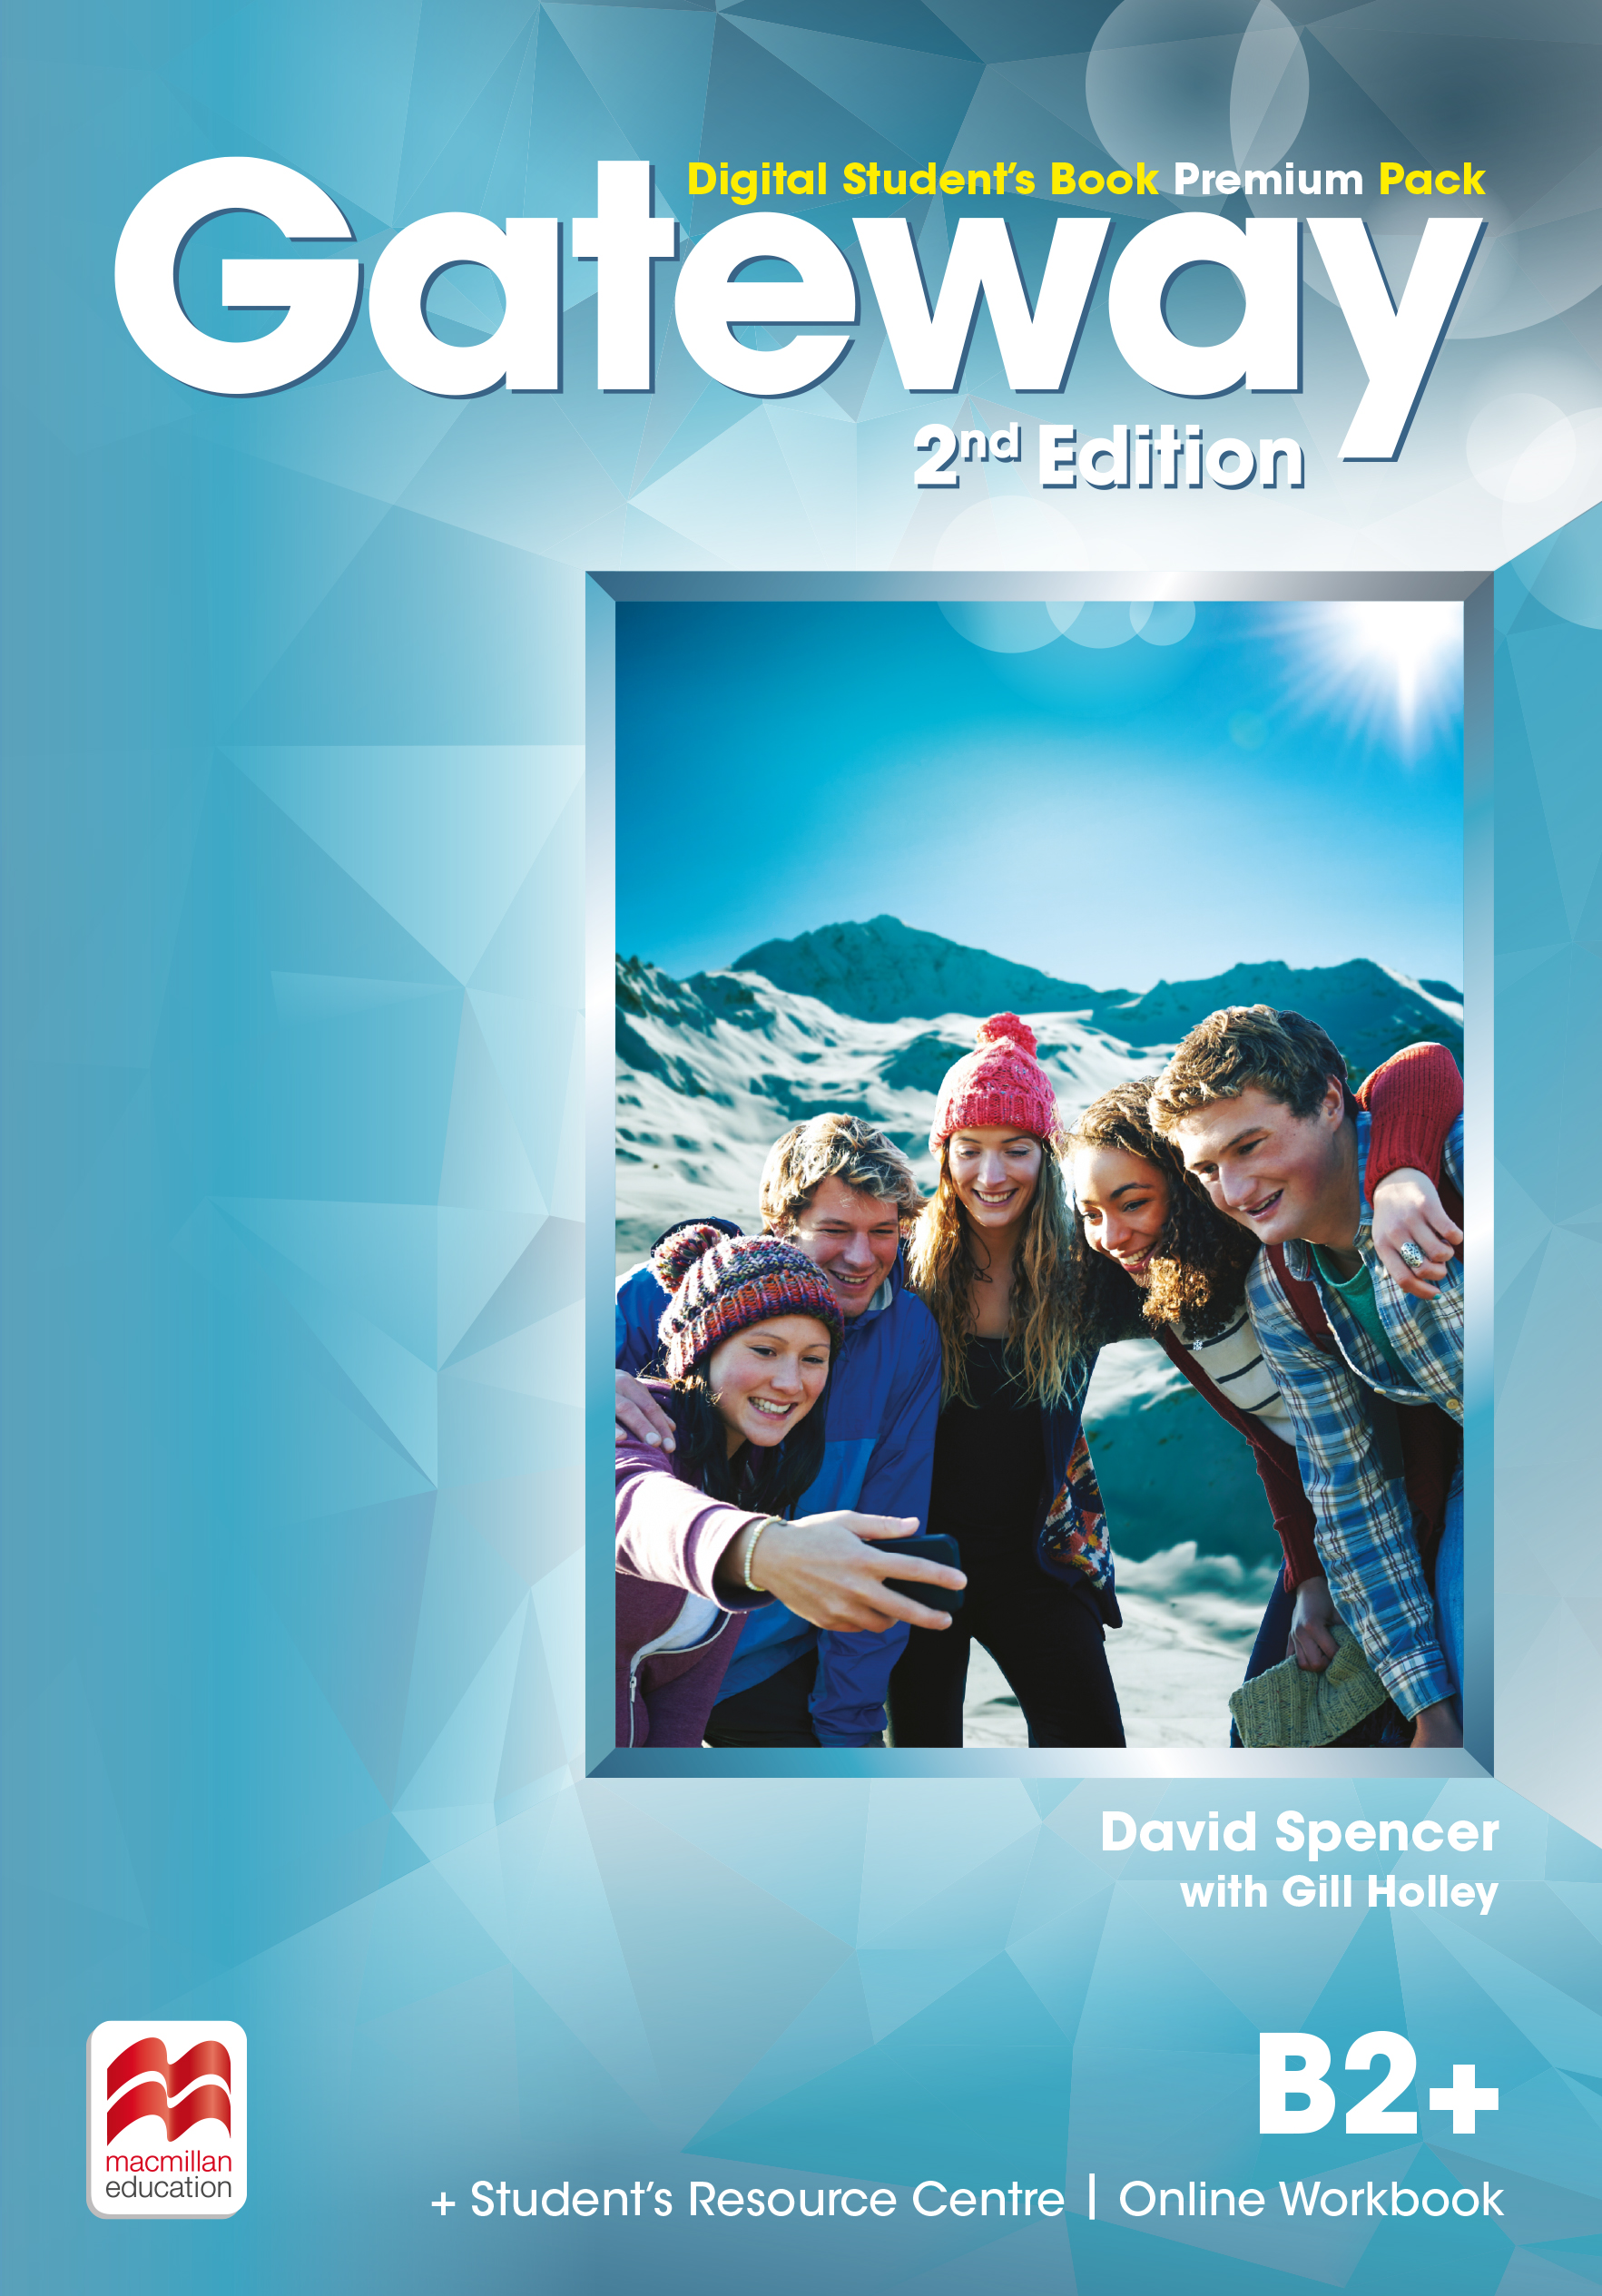 Gateway 2ed B2+ Digital Student's Book Premium Pack